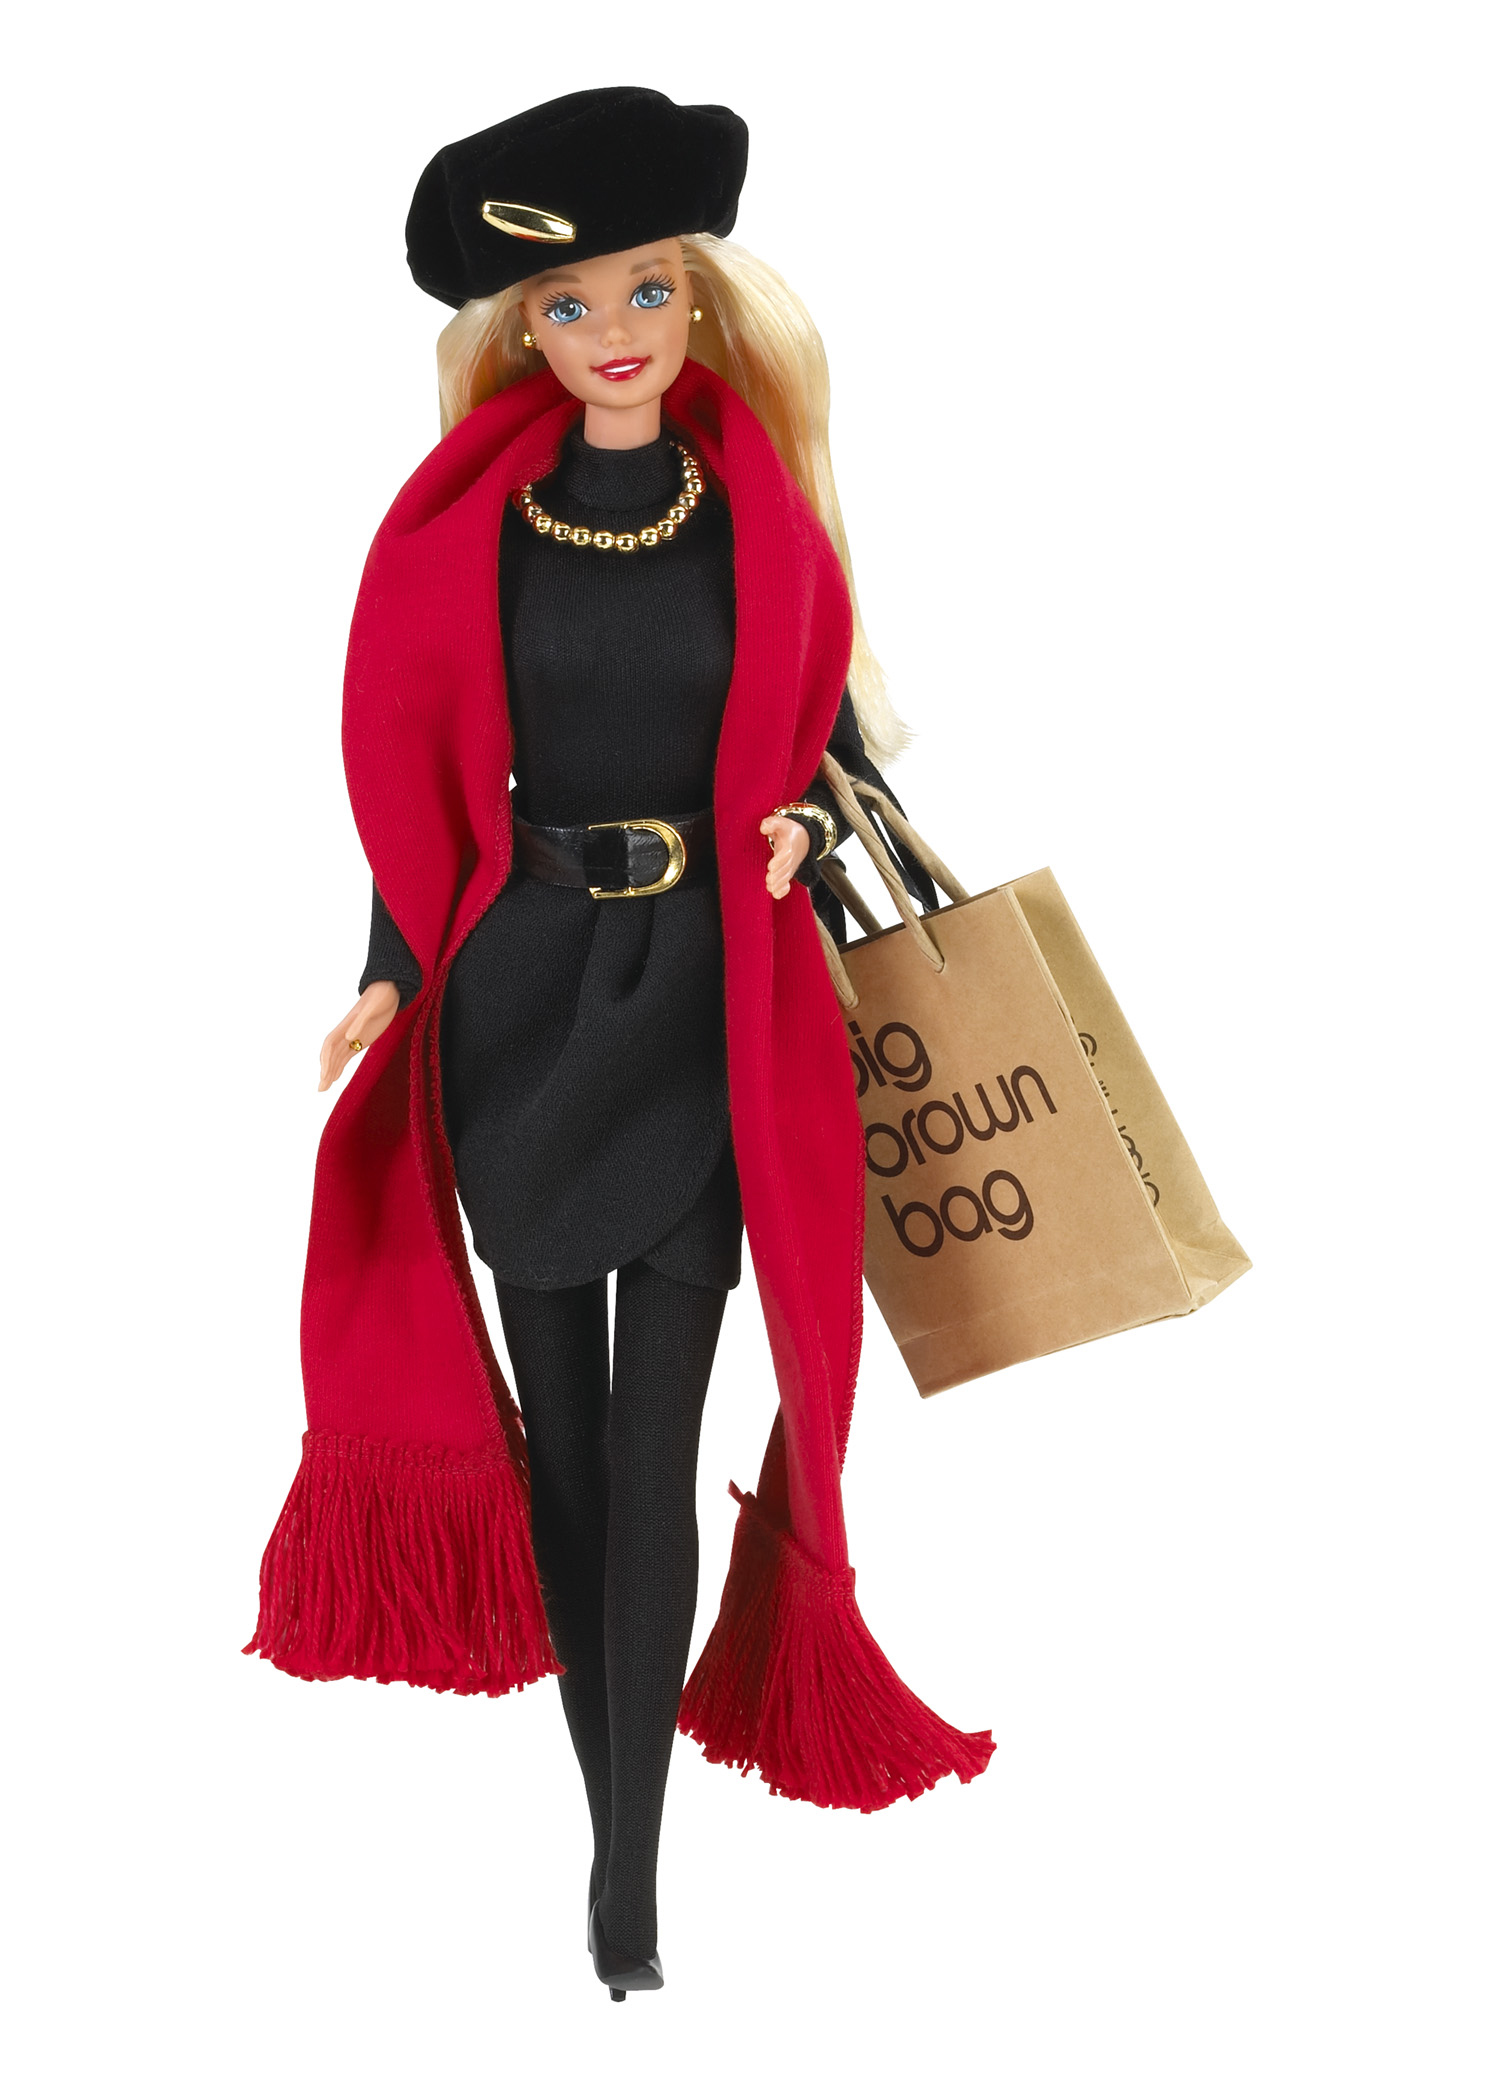 The Donna Karan Barbie Doll, released in 1995.